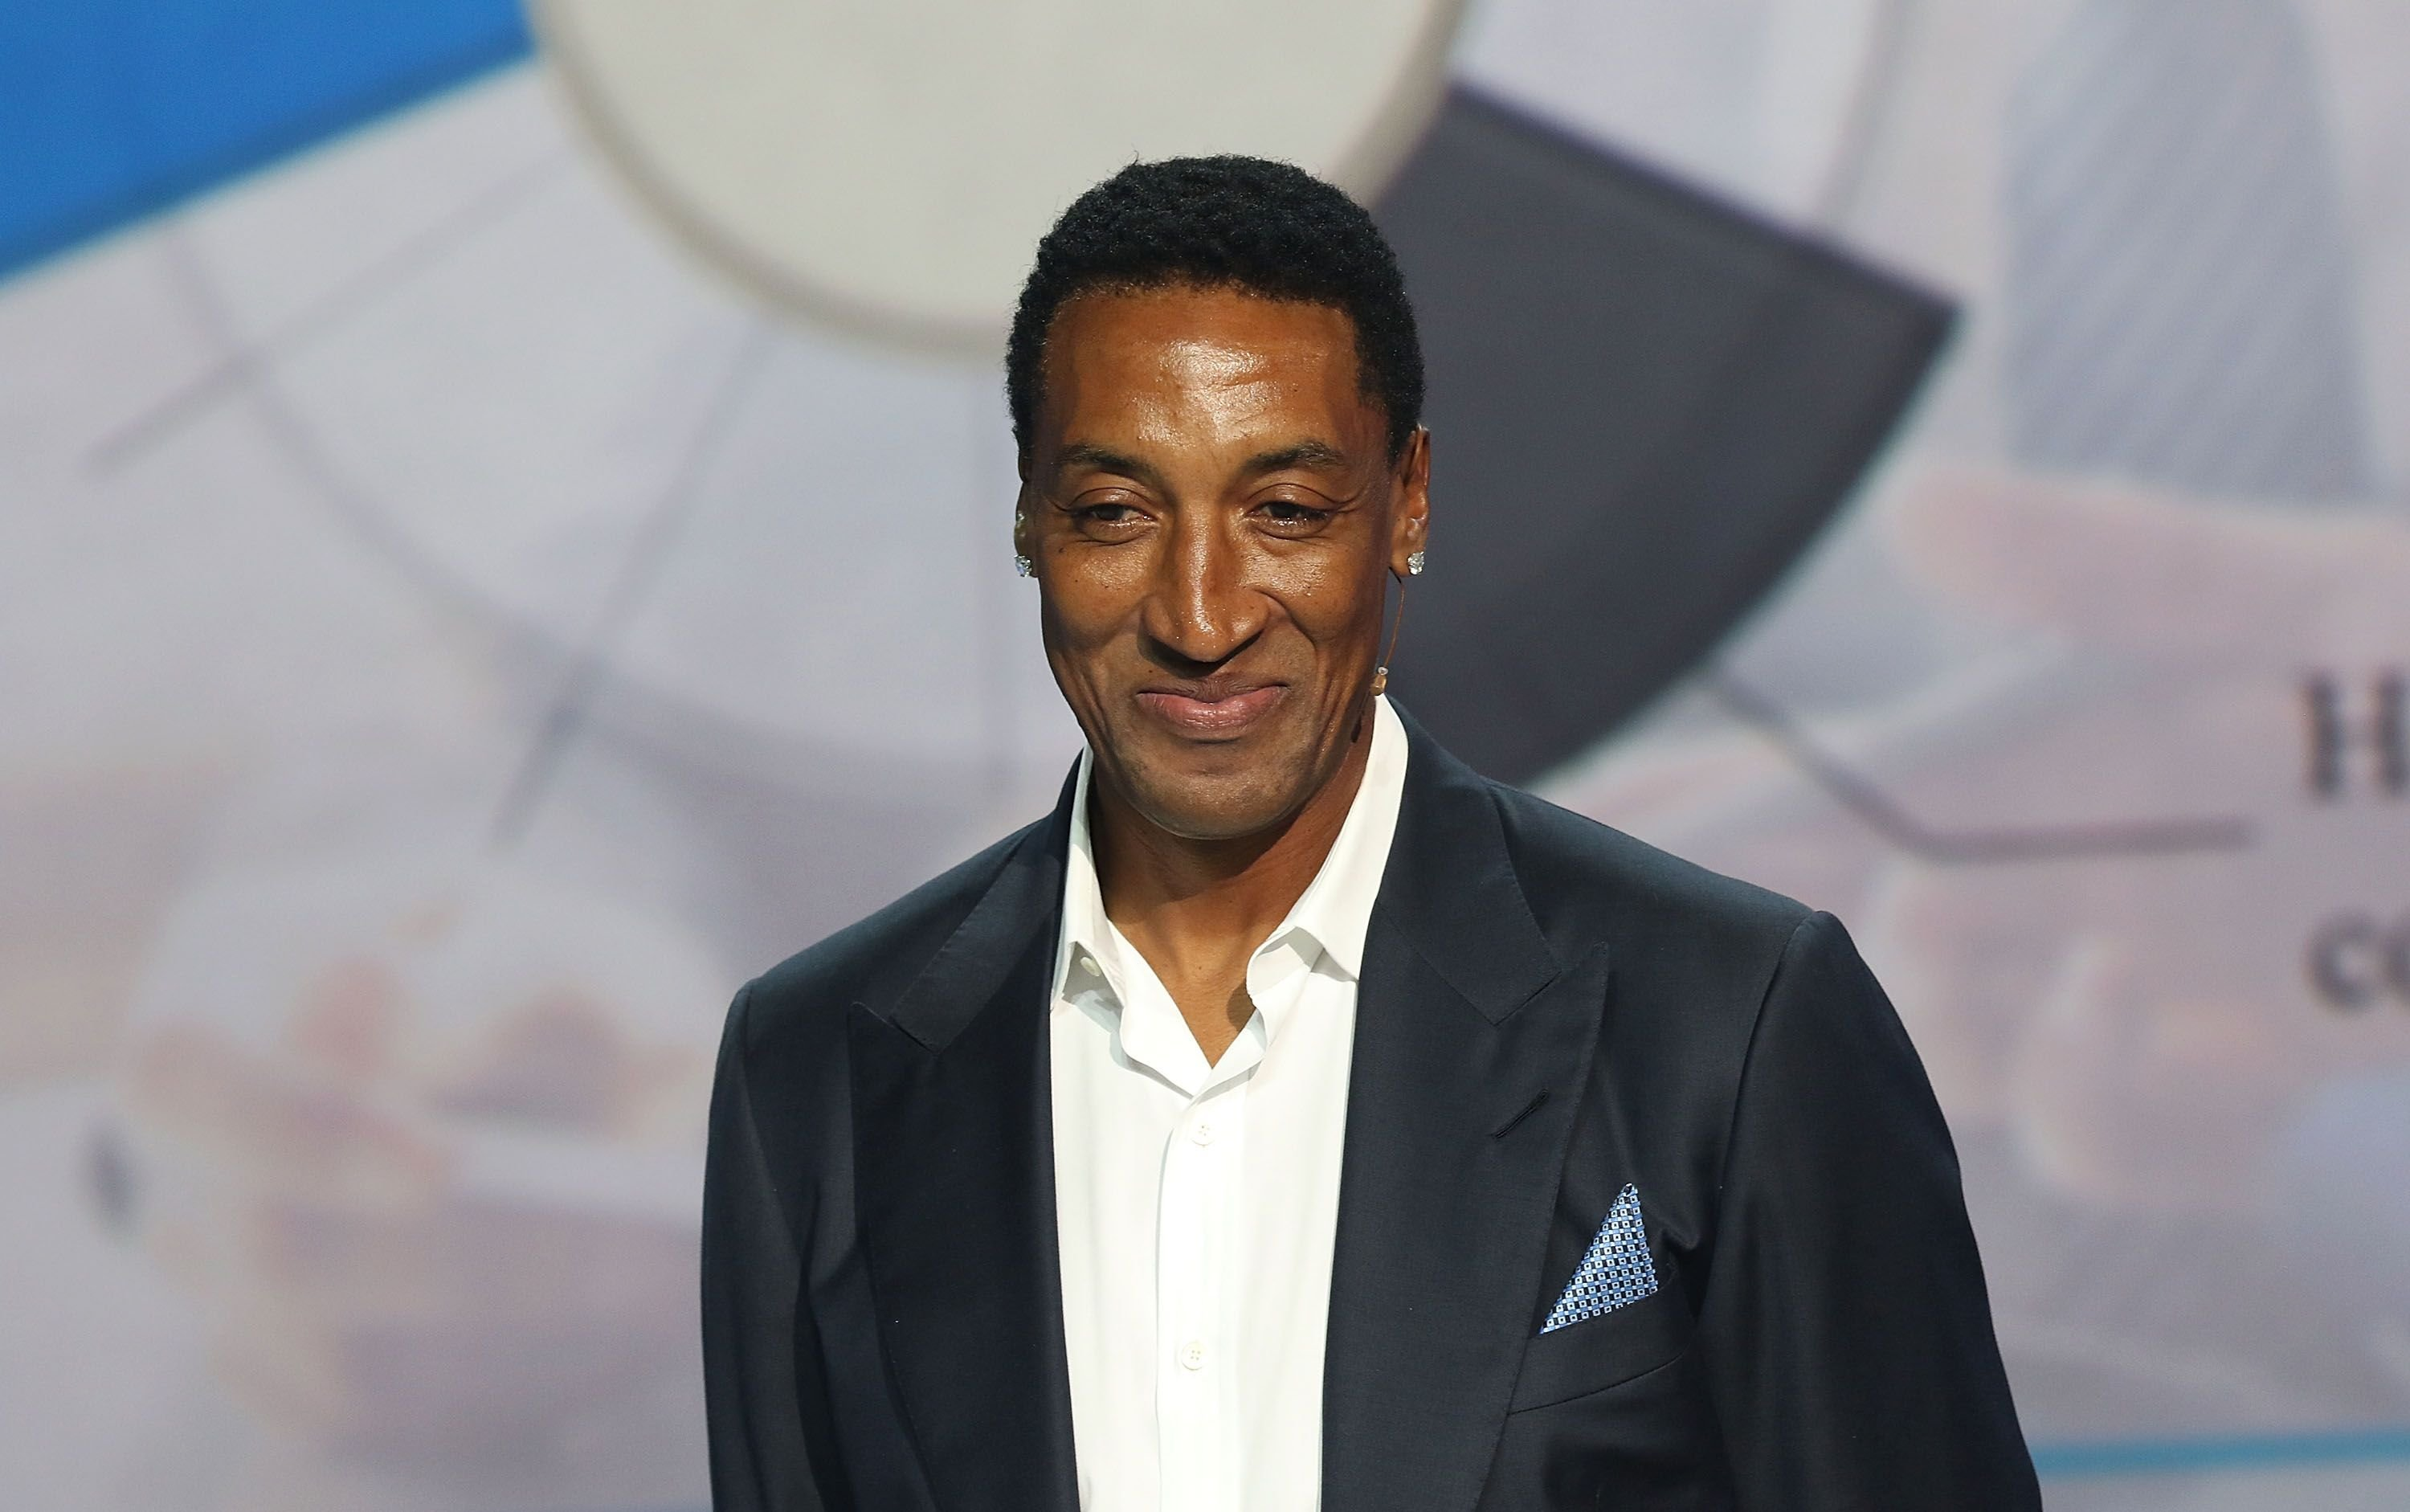 Scottie Pippen at the Market America Conference on February 4, 2016 in Miami. | Photo: Getty Images